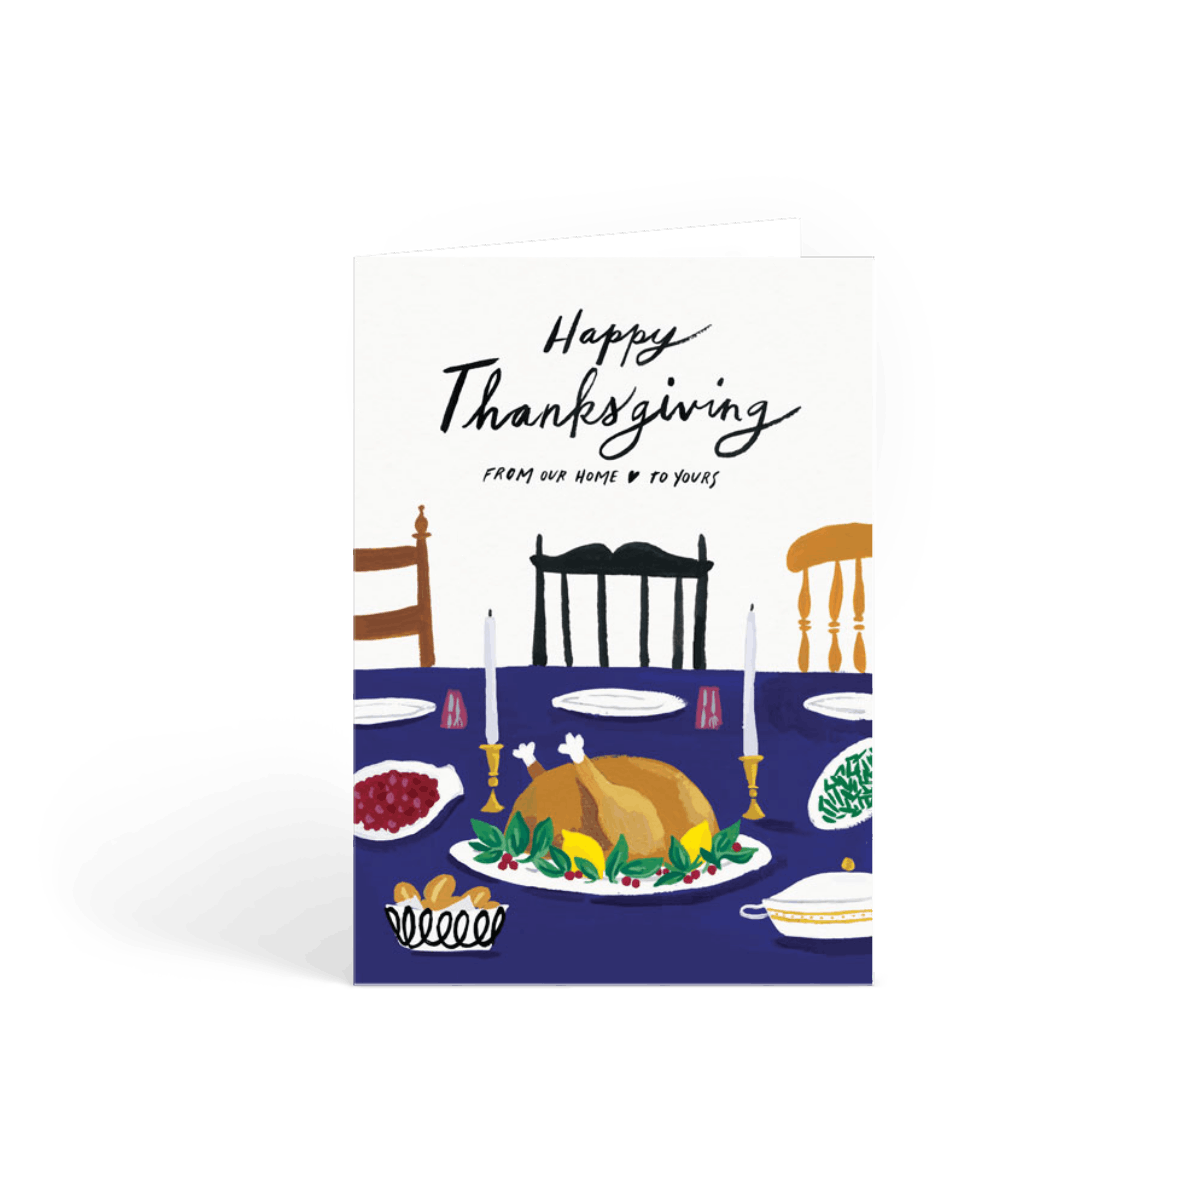 Https%3a%2f%2fwww.papier.com%2fproduct image%2f51130%2f2%2fthanksgiving table 12525 front 1543228057.png?ixlib=rb 1.1